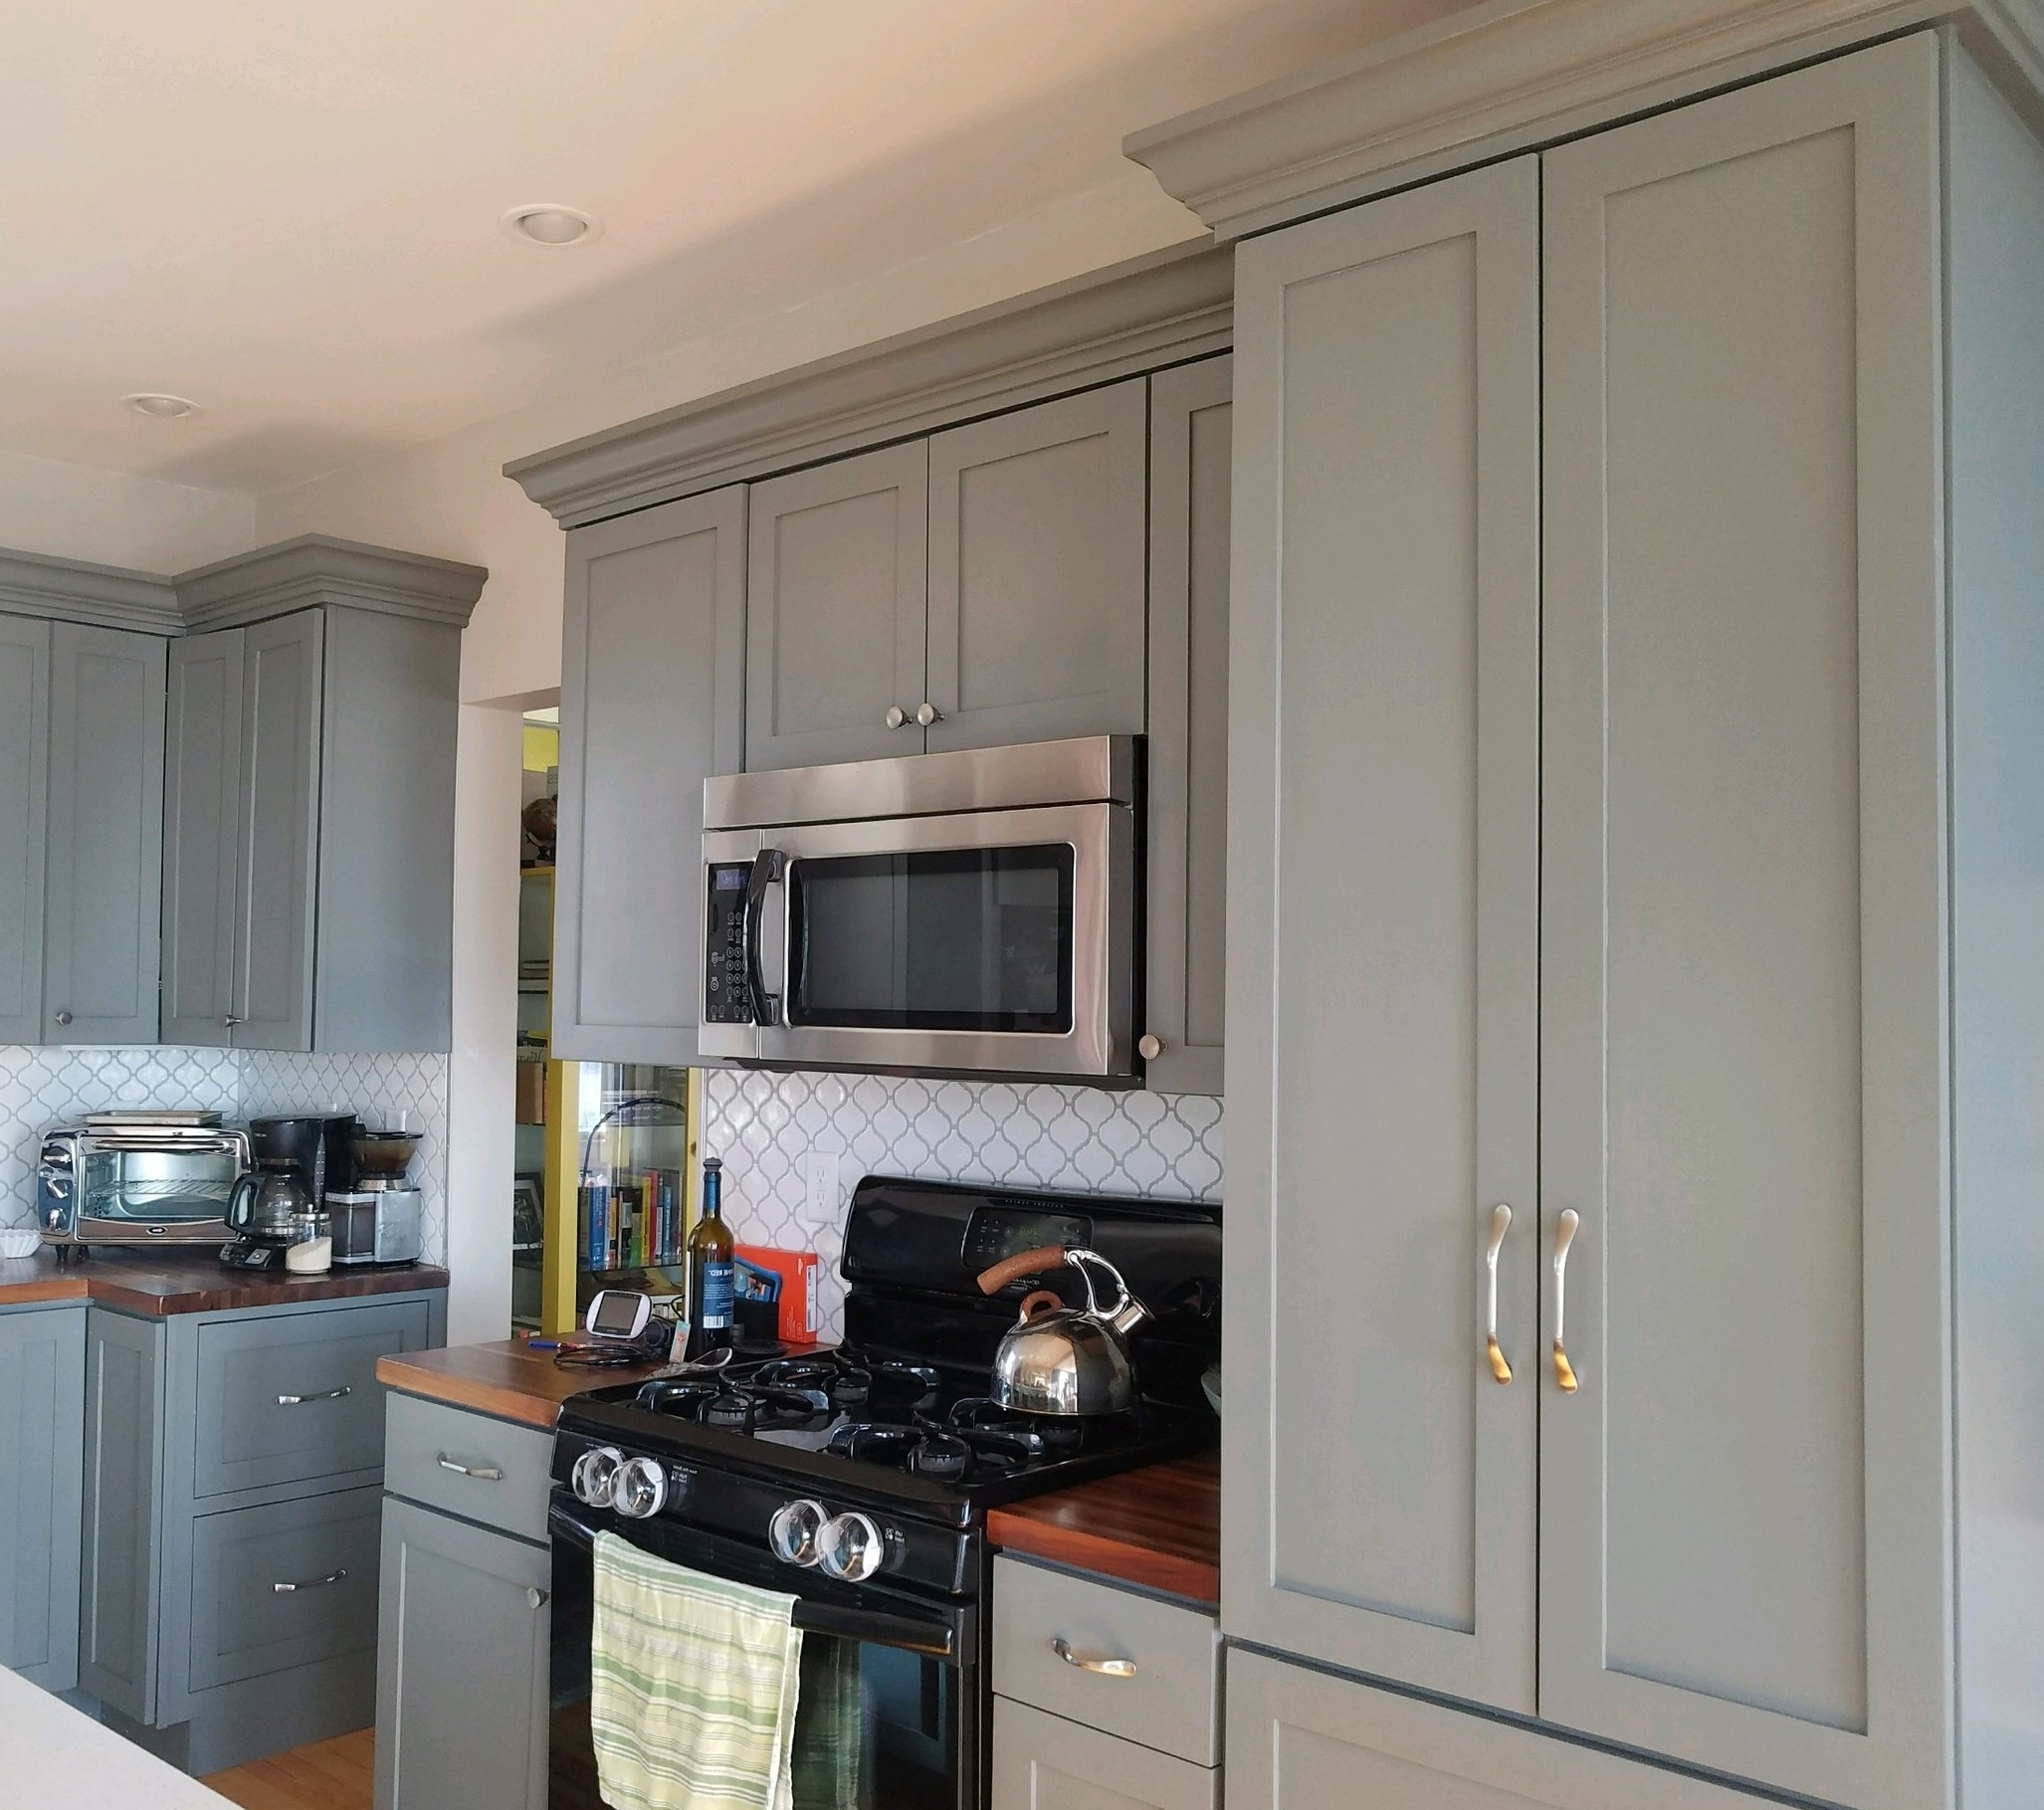 Kitchen Remodeling - We are capable of doing all levels of kitchen remodeling projects: updating cabinetry and backsplashes, refacing and repainting cabinets, as well as complete kitchen renovations.